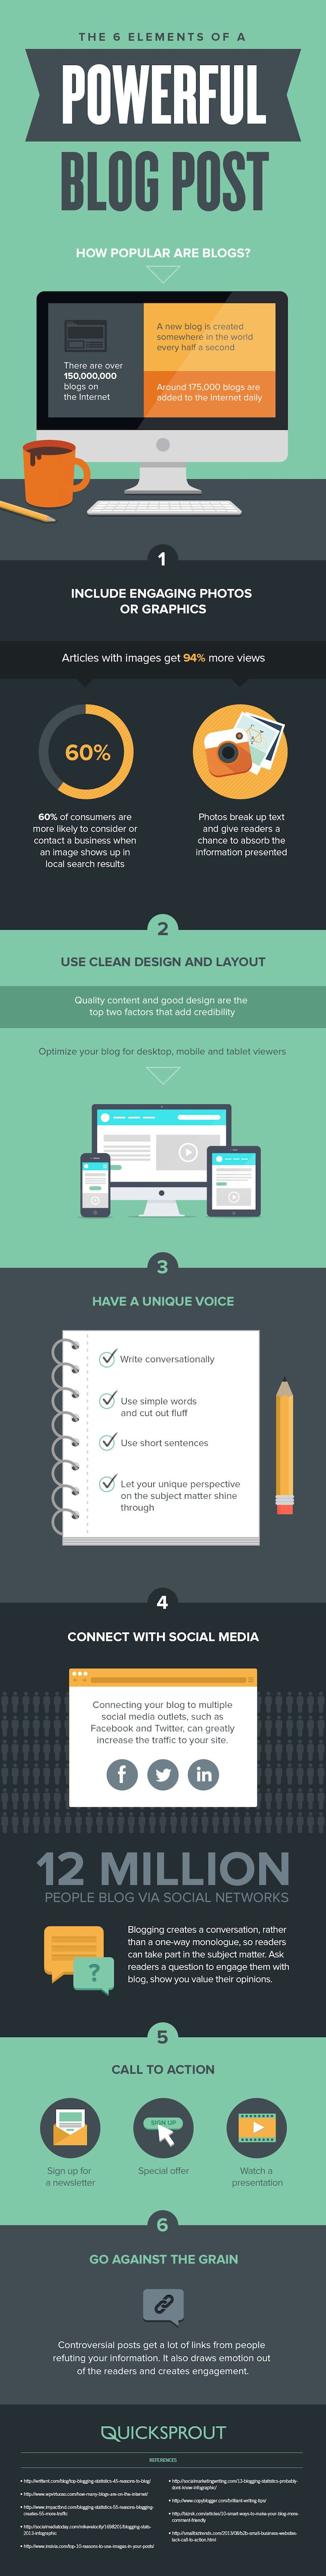 this infographic shows 6 parts of an amazing blog post